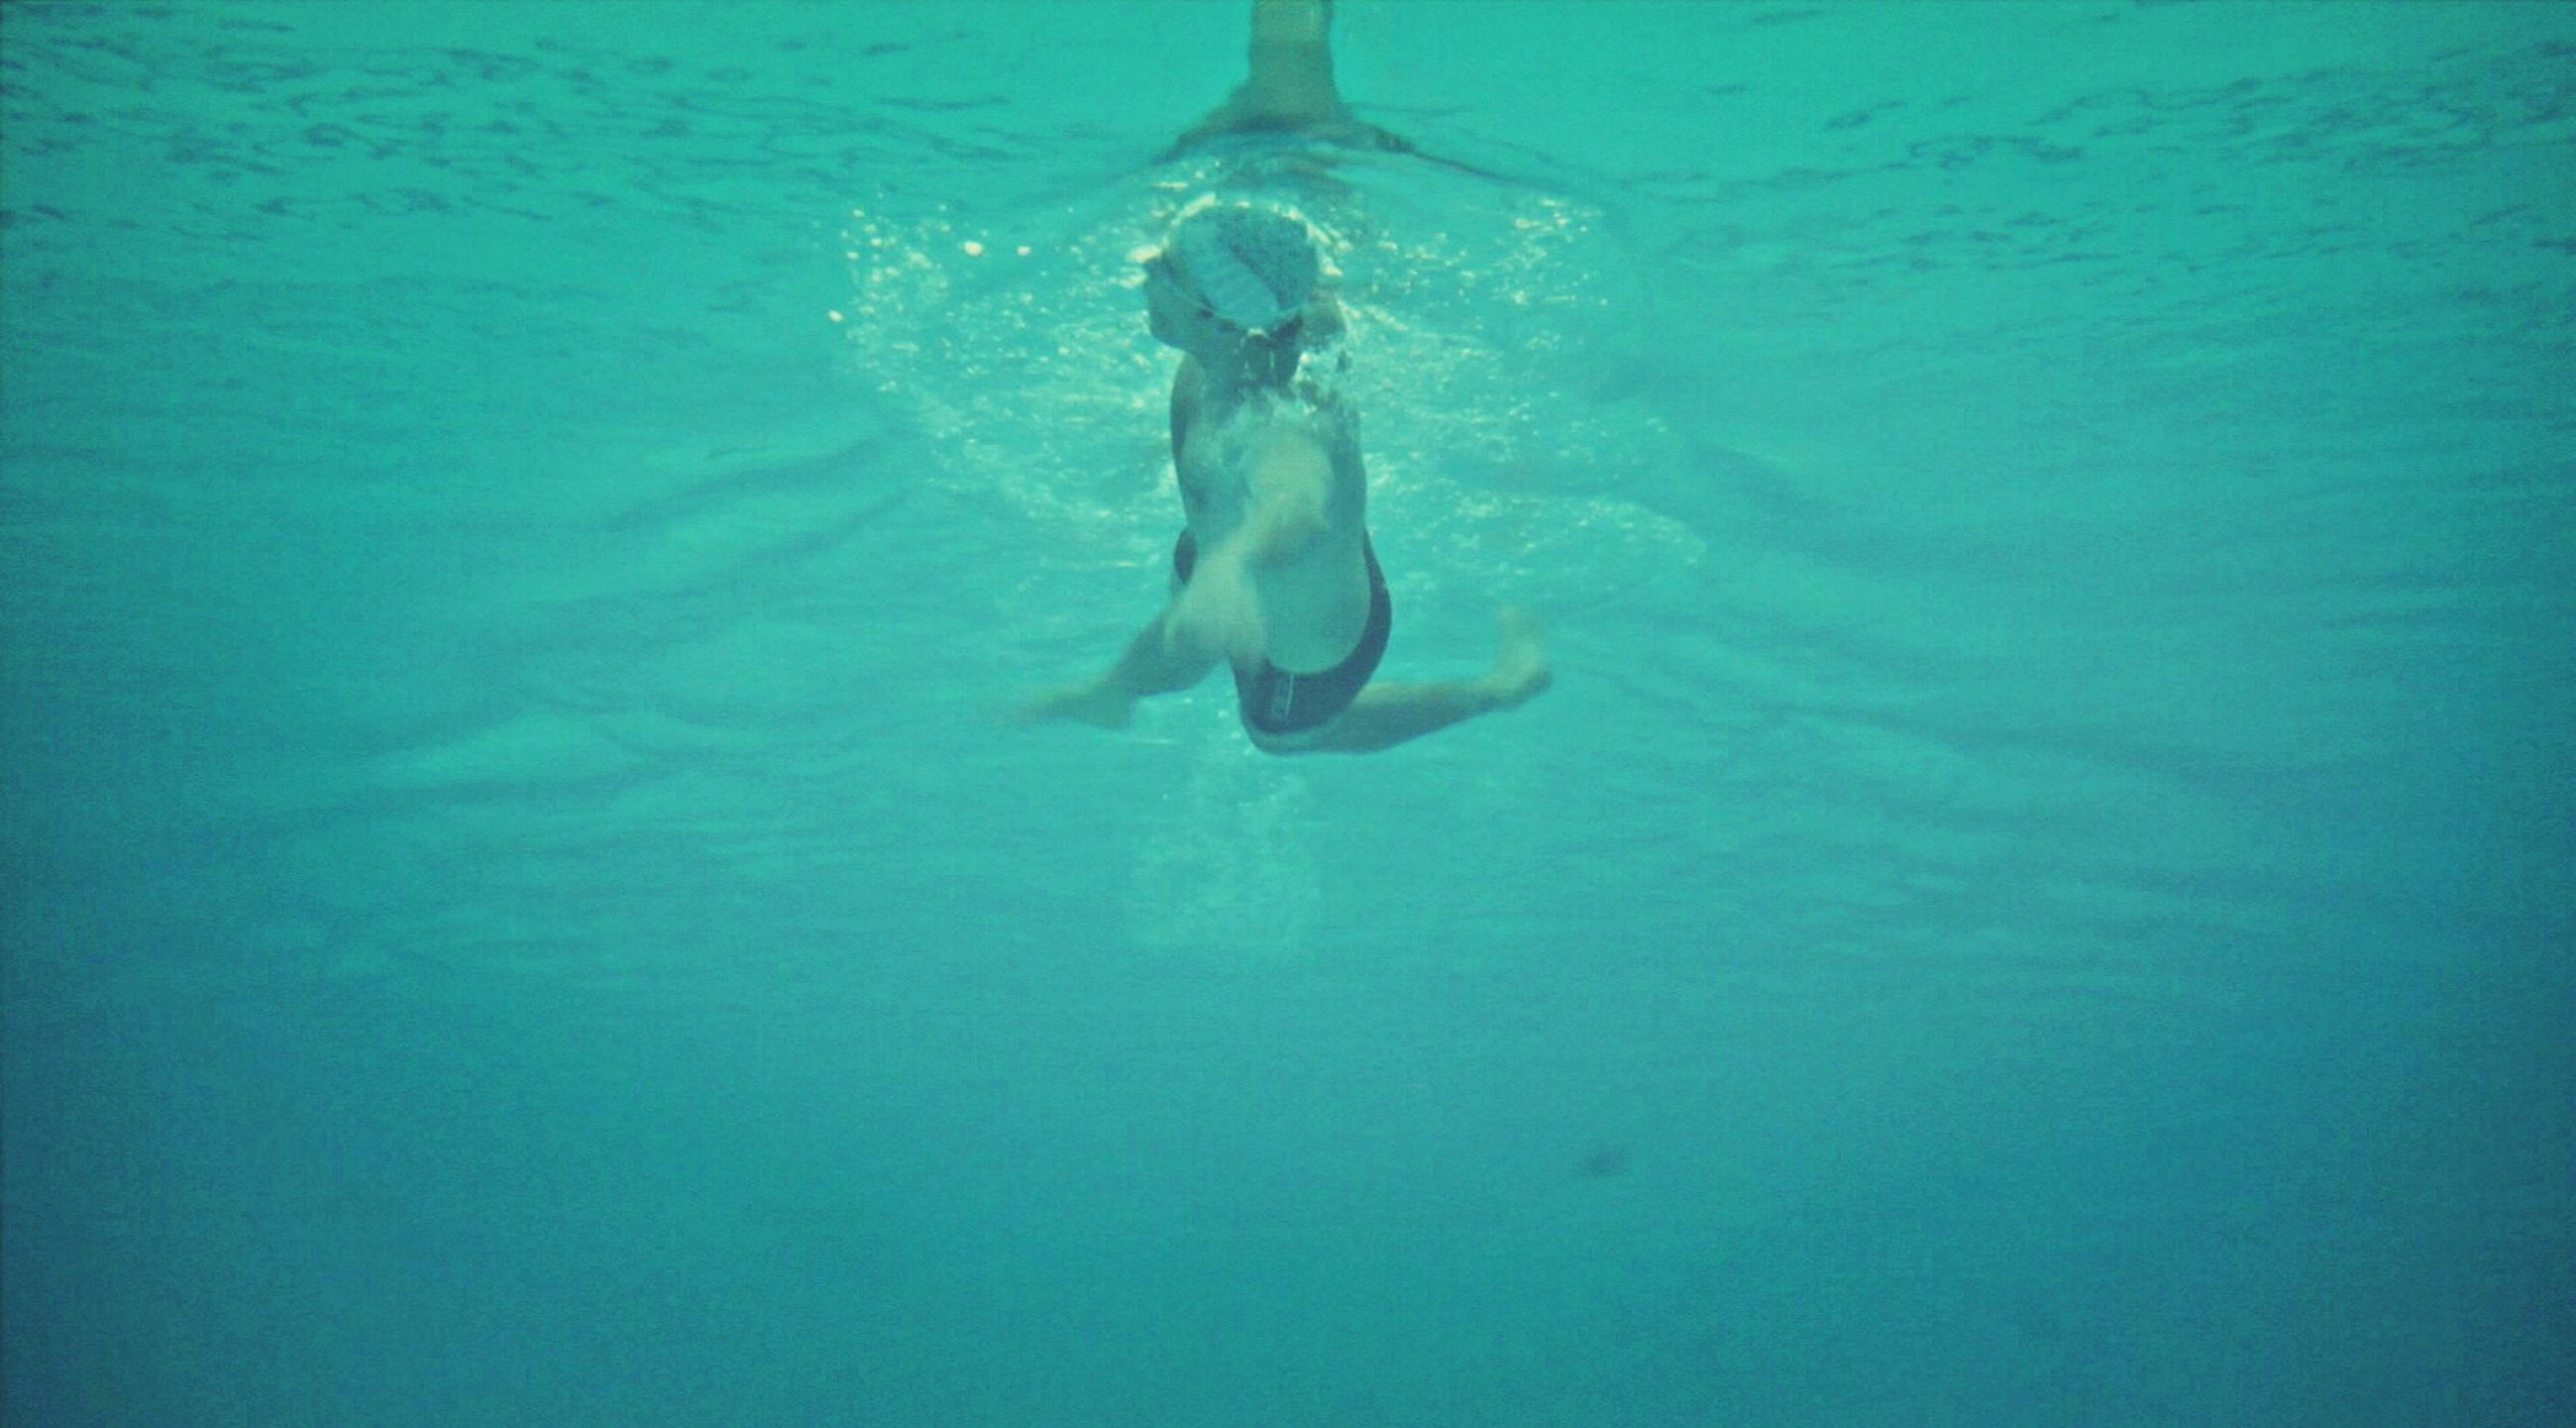 water, swimming, waterfront, sea, blue, full length, underwater, rippled, high angle view, animal themes, wildlife, swimming pool, animals in the wild, leisure activity, motion, one animal, nature, turquoise colored